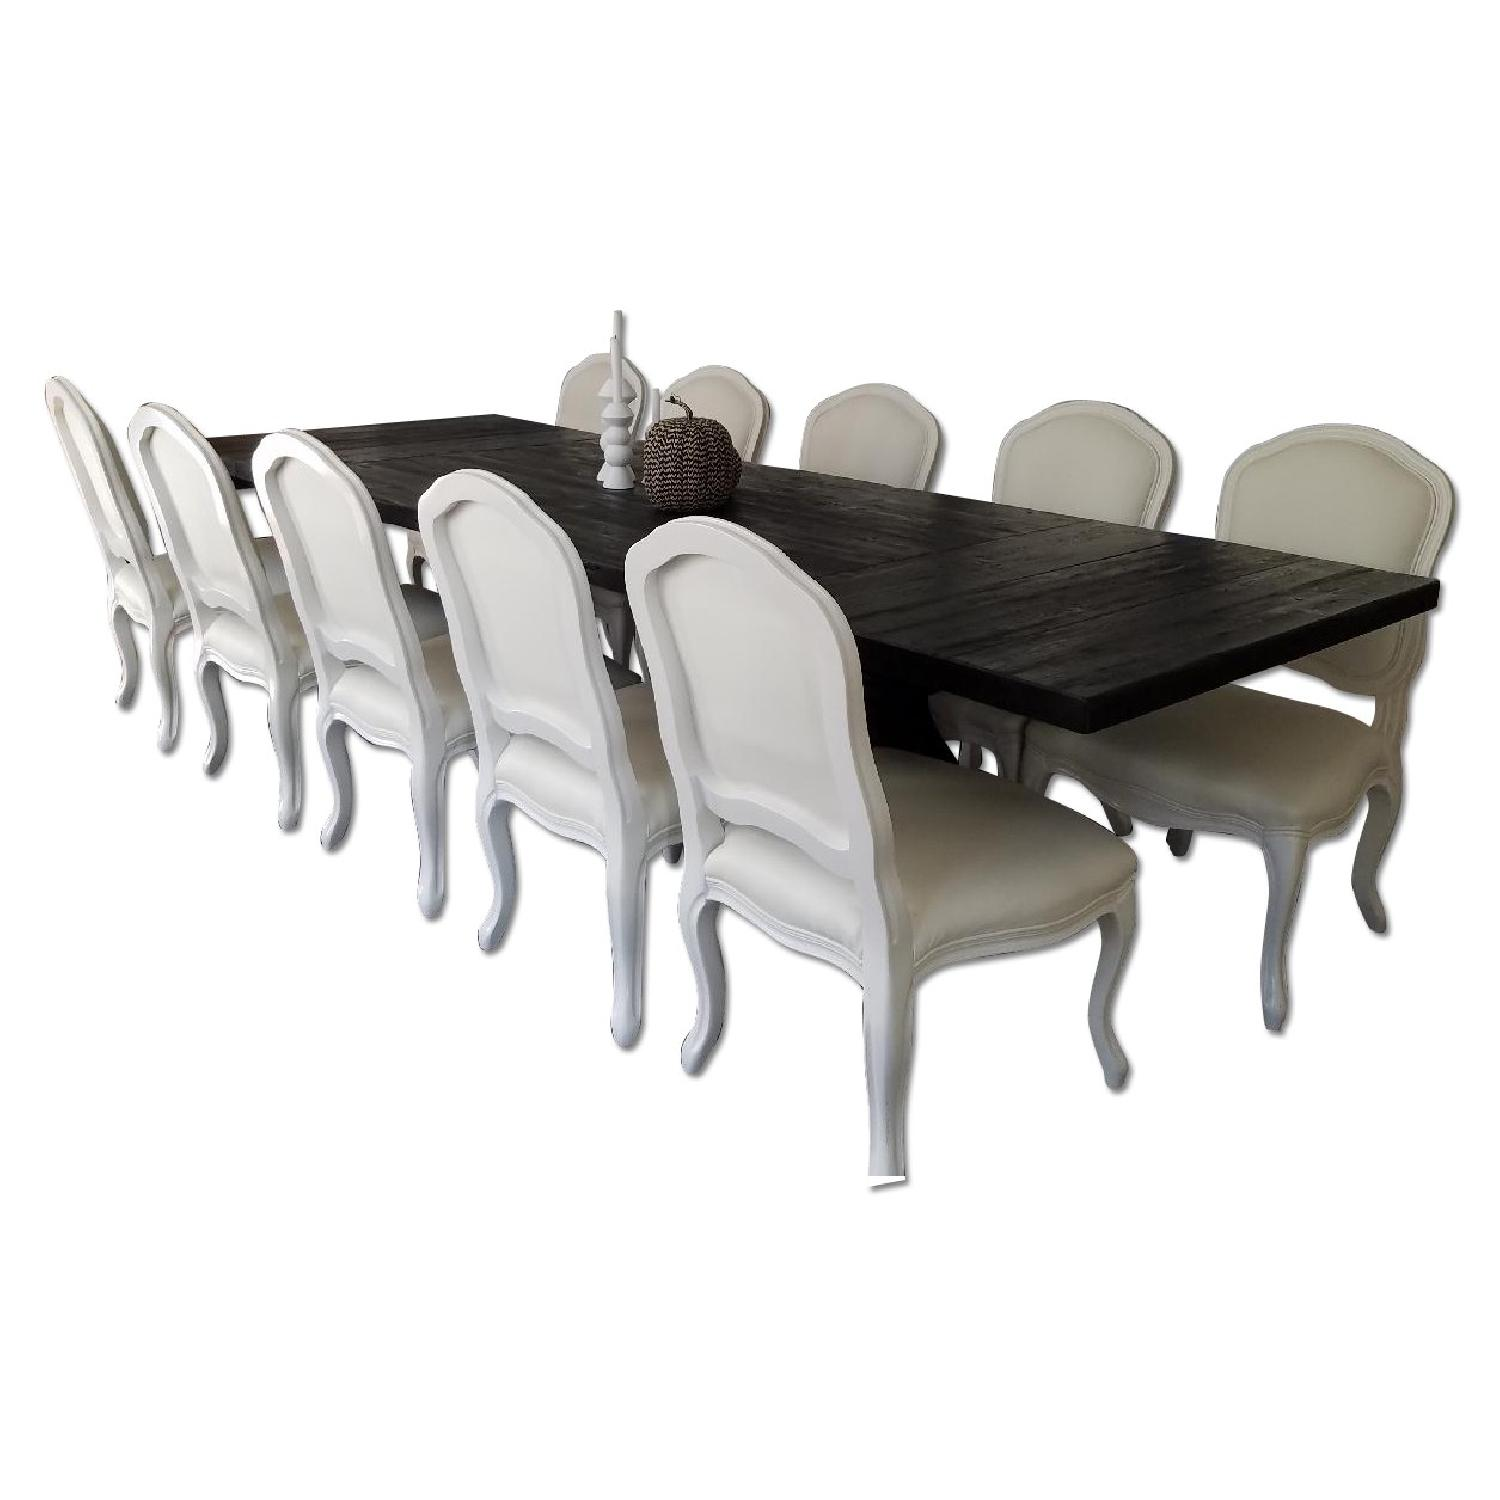 Restoration Hardware Dining Table w/ 10 Chairs - image-0